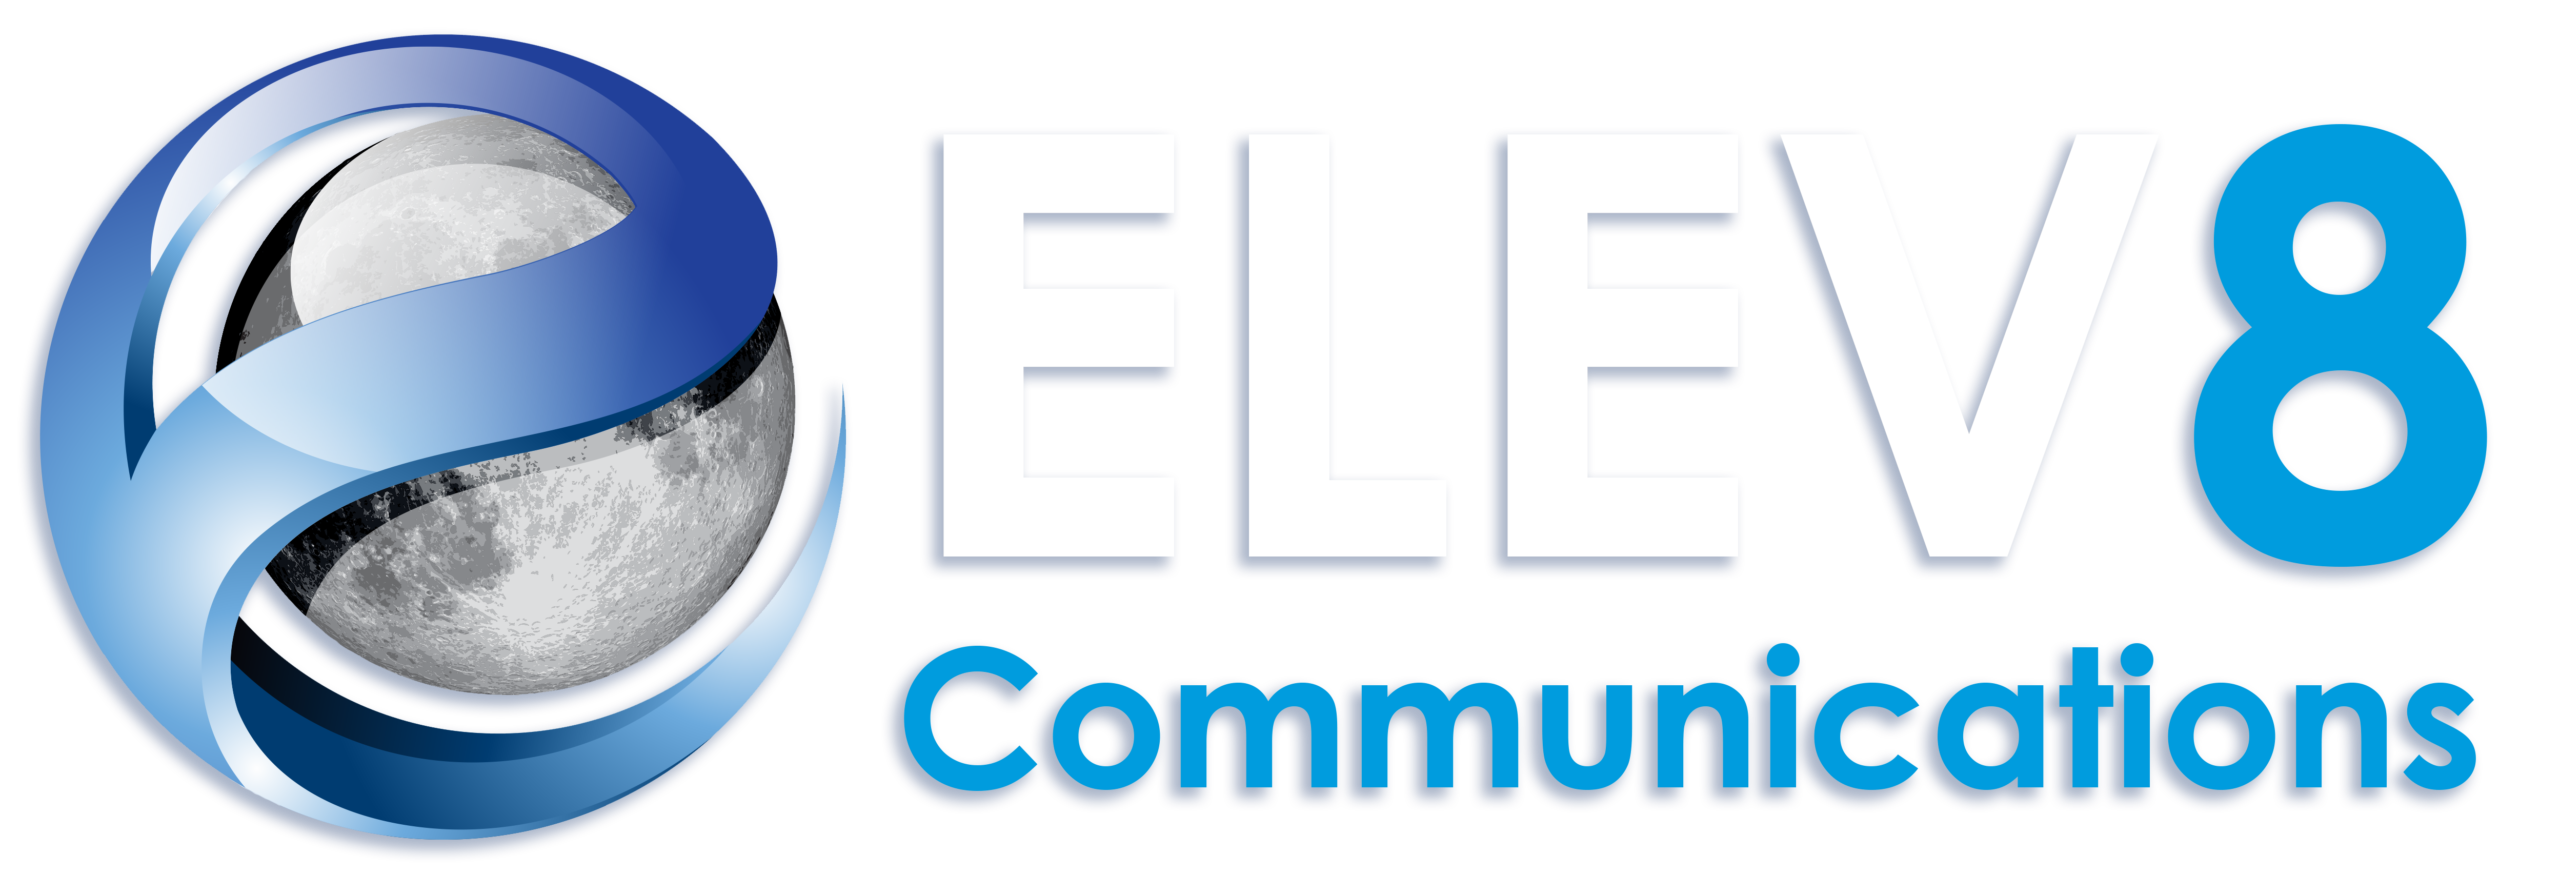 ELEV8 Communications